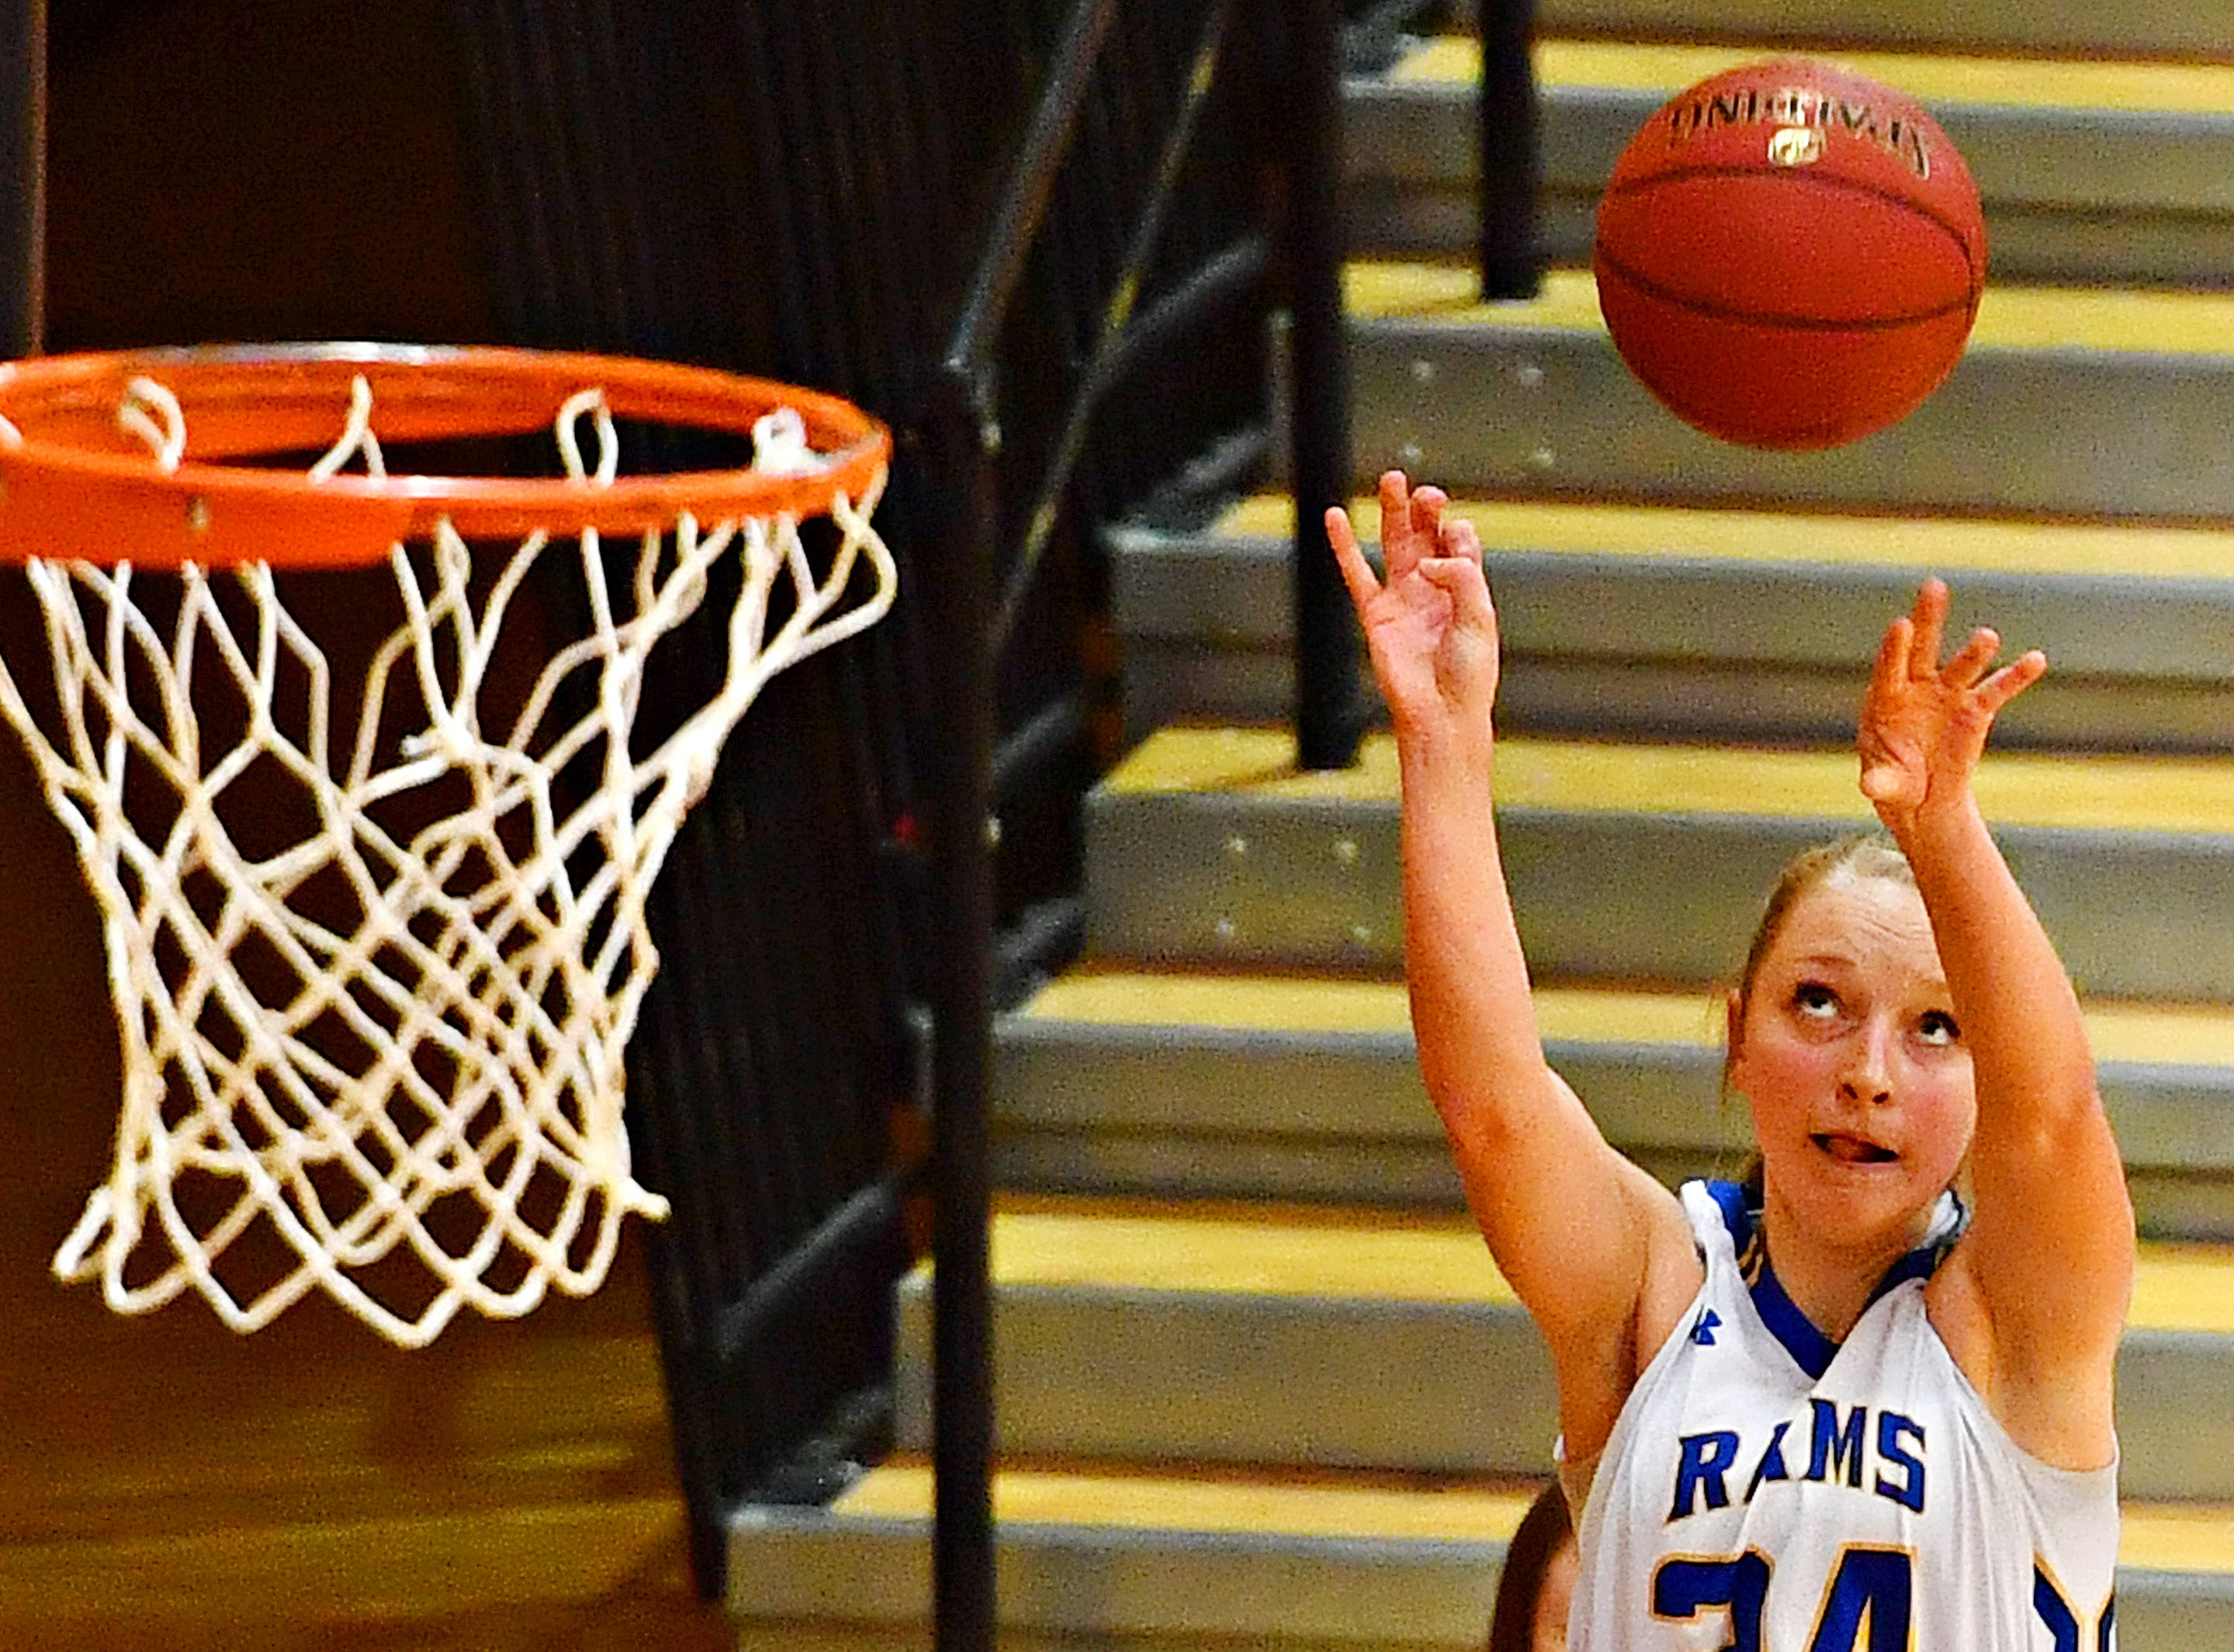 Kennard-Dale's Lexie Kopko aims for the basket during PIAA Class 4-A girl's basketball second round action against Mifflinburg at Milton Hershey High School in Hershey, Wednesday, March 13, 2019. Mifflinburg would win the game 51-45. Dawn J. Sagert photo